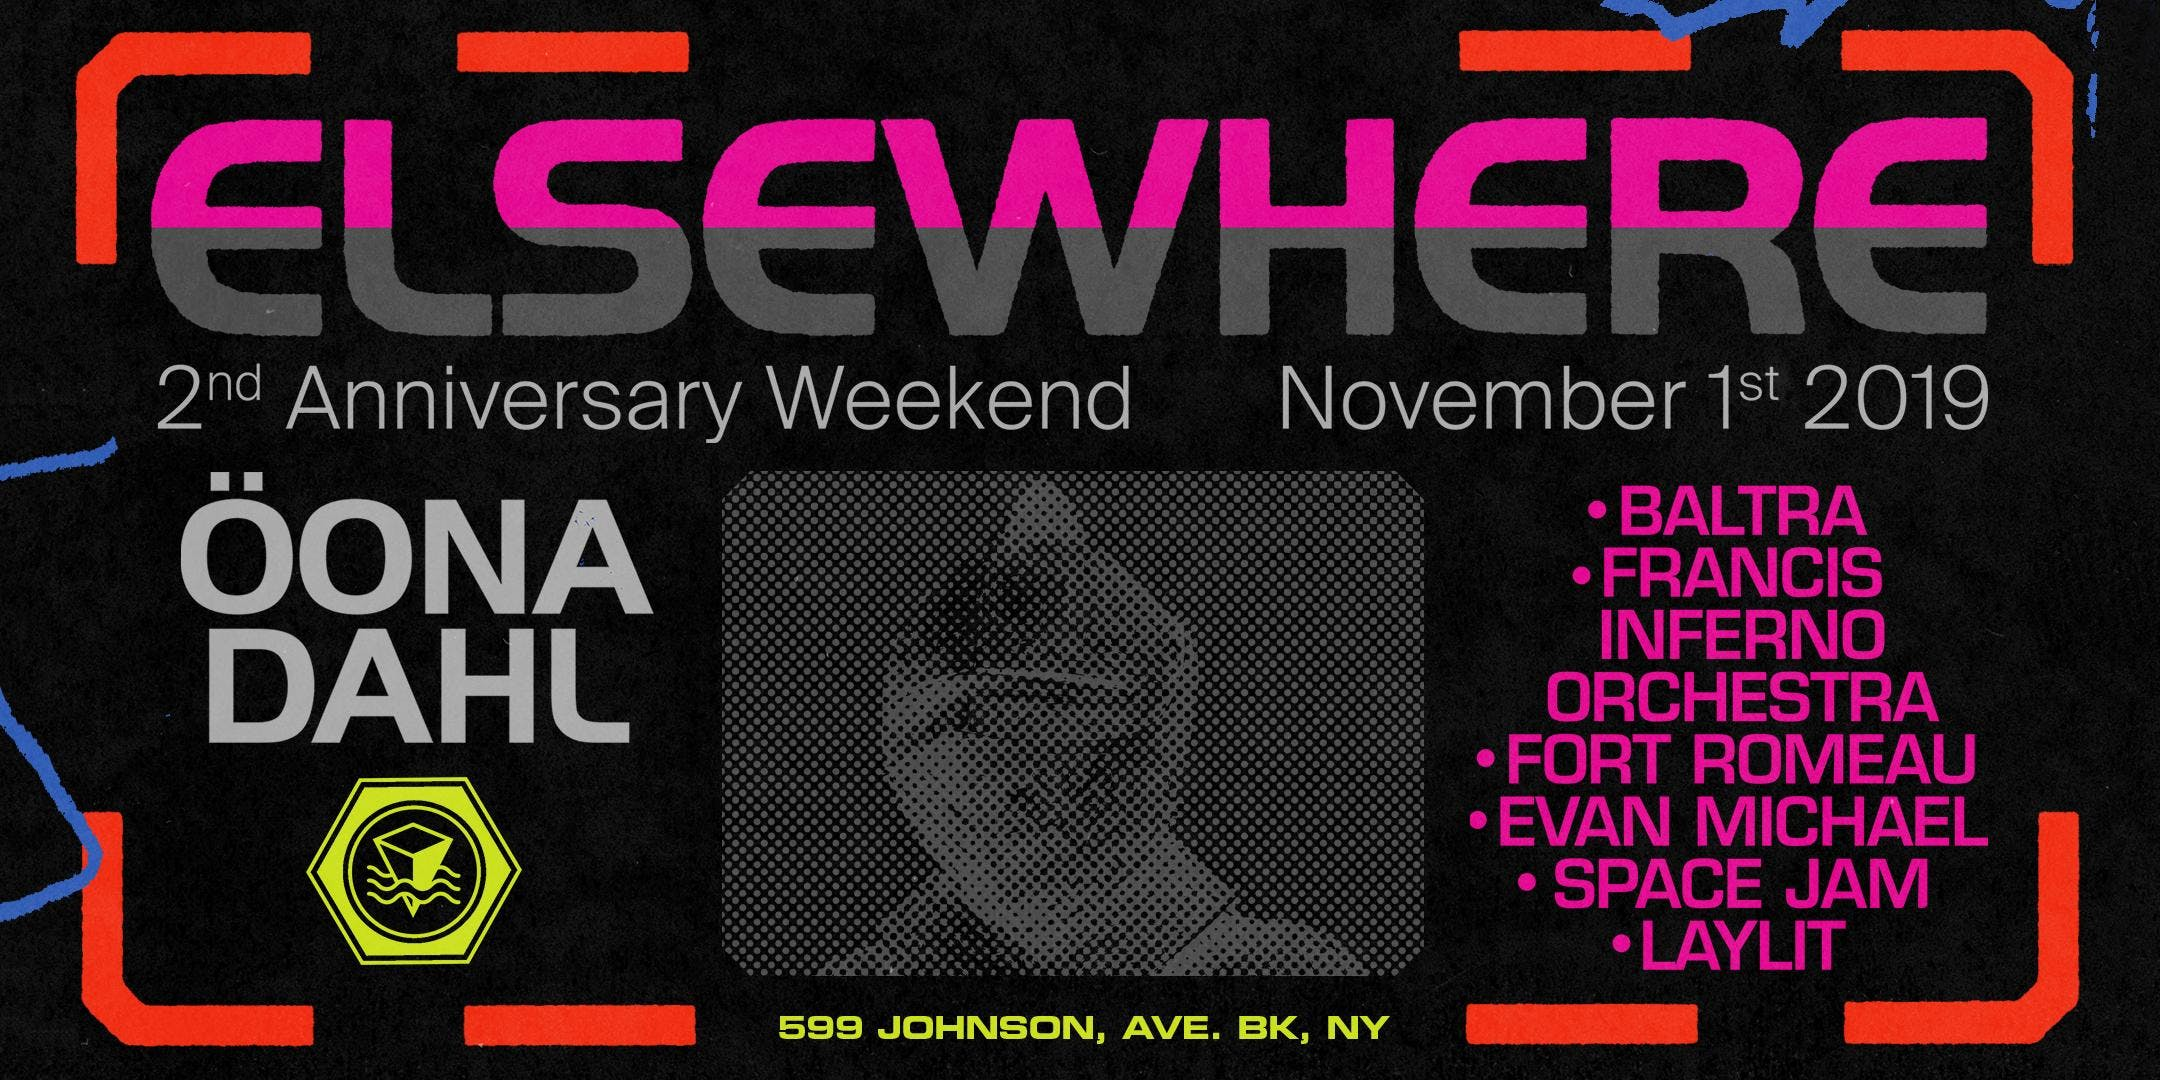 Öona Dahl, Baltra, Francis Inferno Orchestra, Fort Romeau, Evan Michael, Space Jam & Laylit (Elsewhere 2nd Anniversary Weekend!)